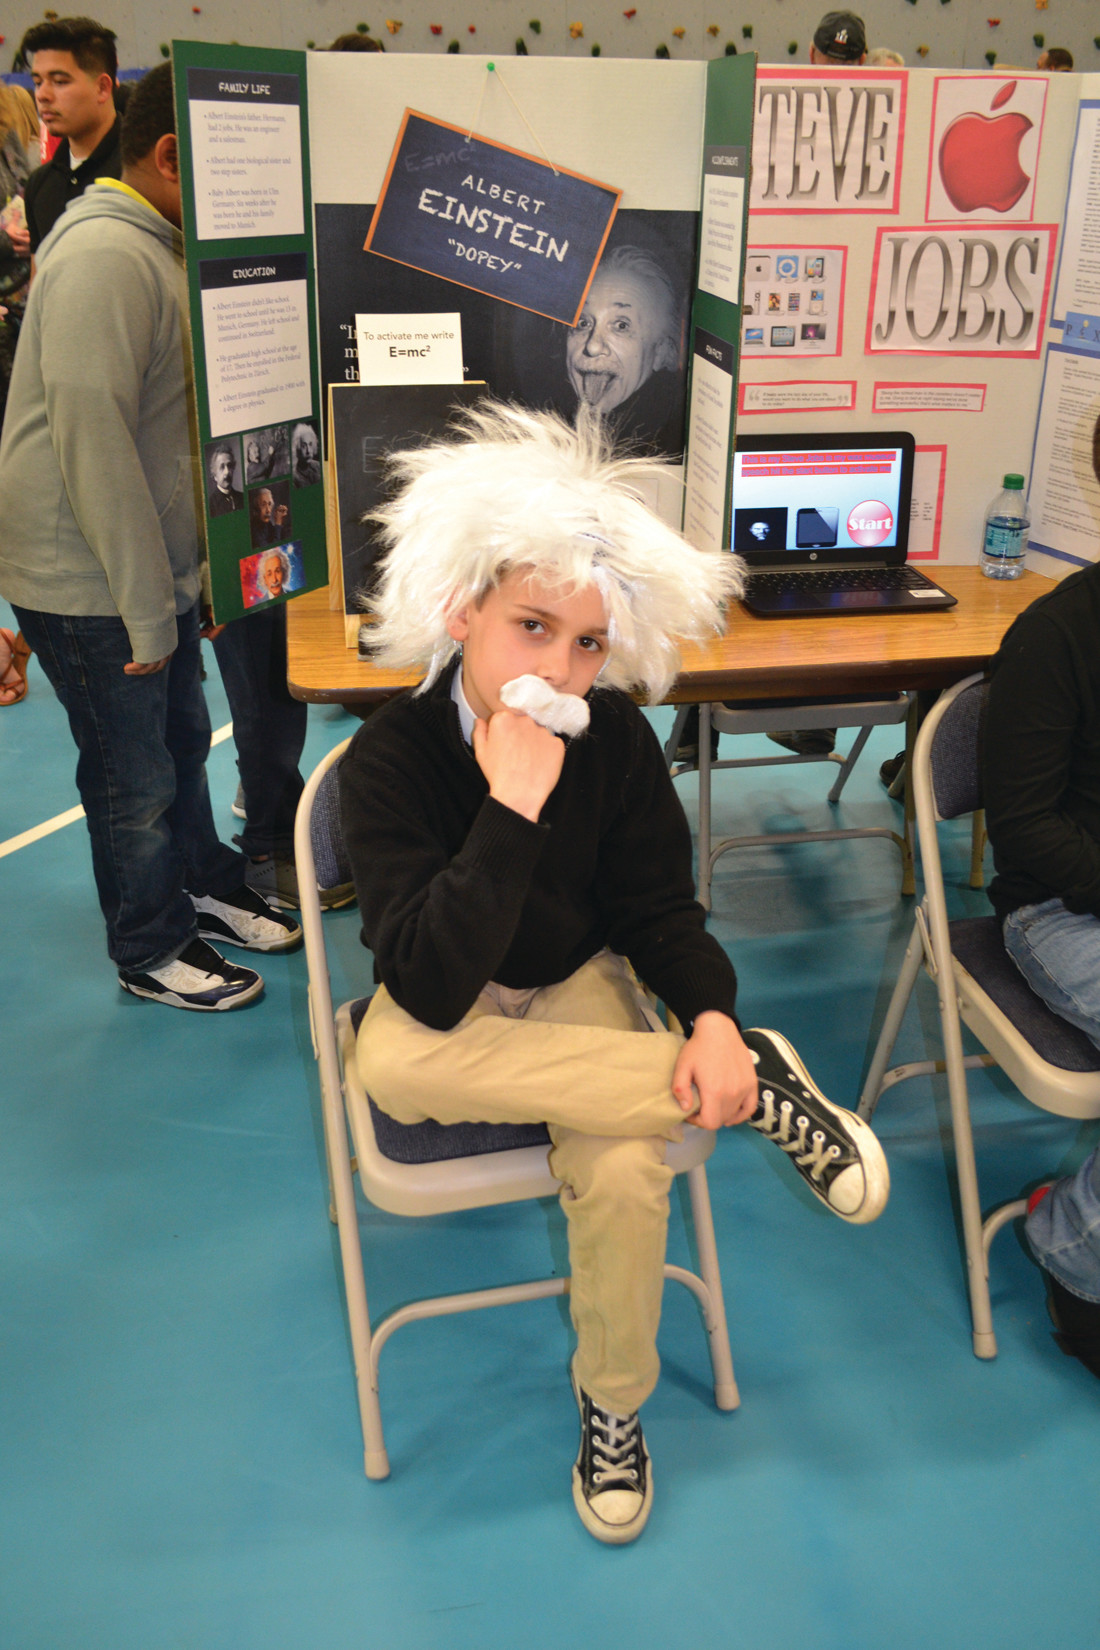 GENIUS AT WORK: Luke DaPonte wore an impressive white mustache and wig to get in character as Albert Einstein.